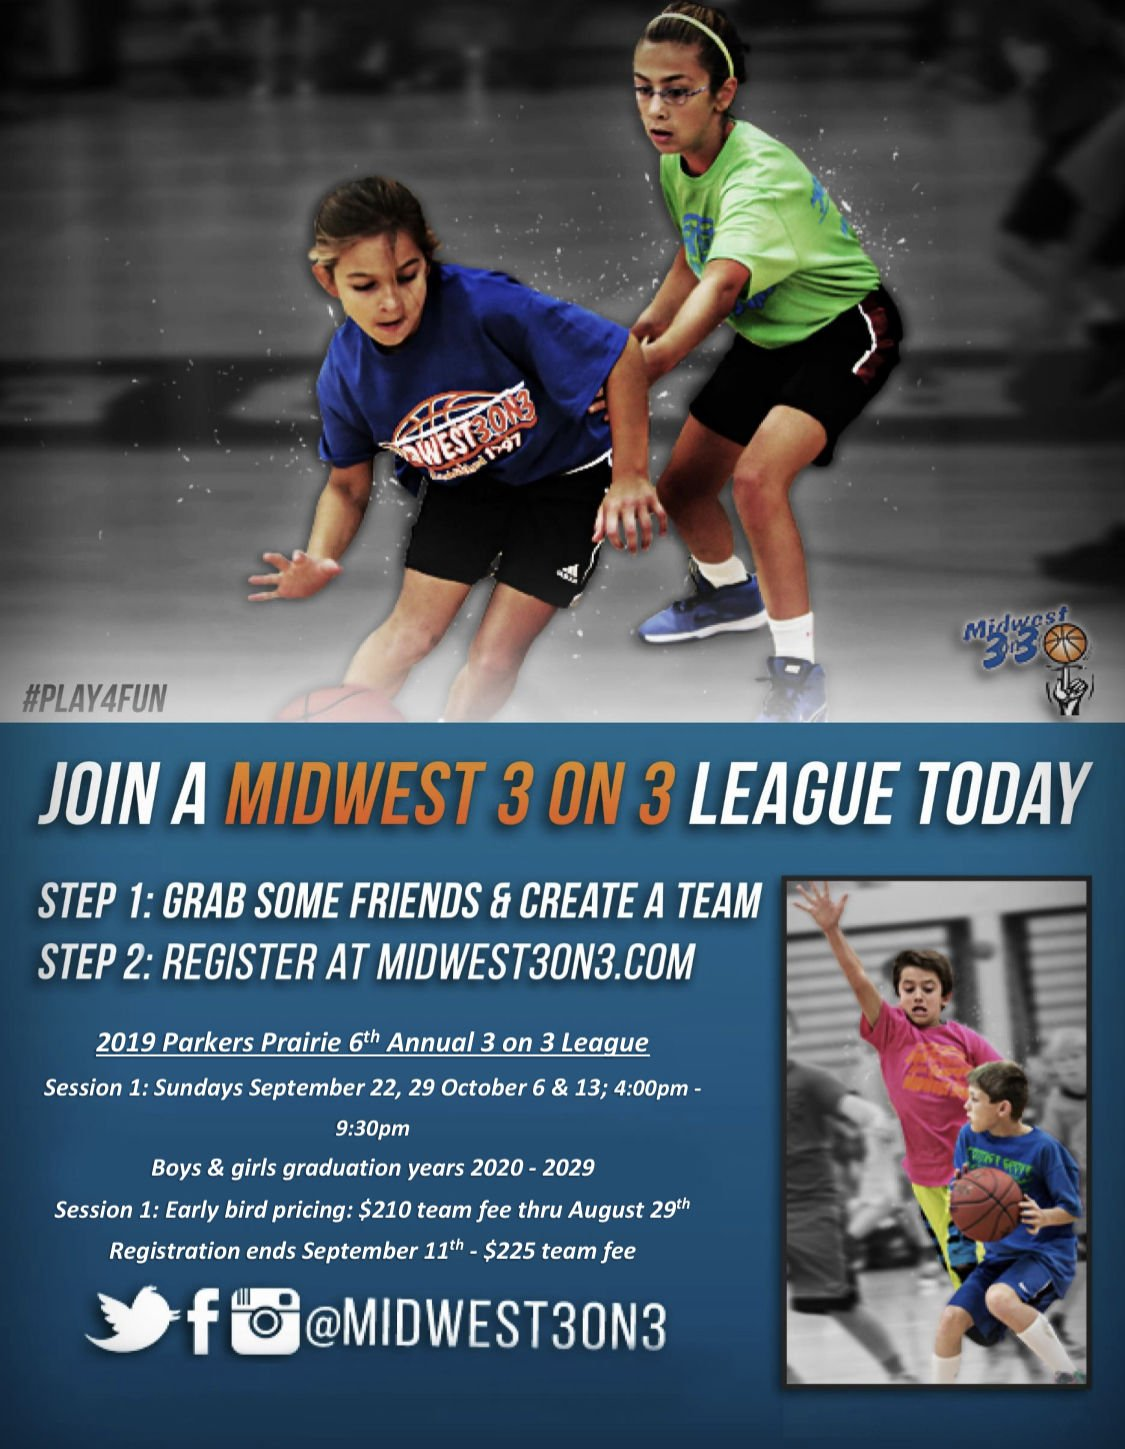 3 on 3 Youth Basketball